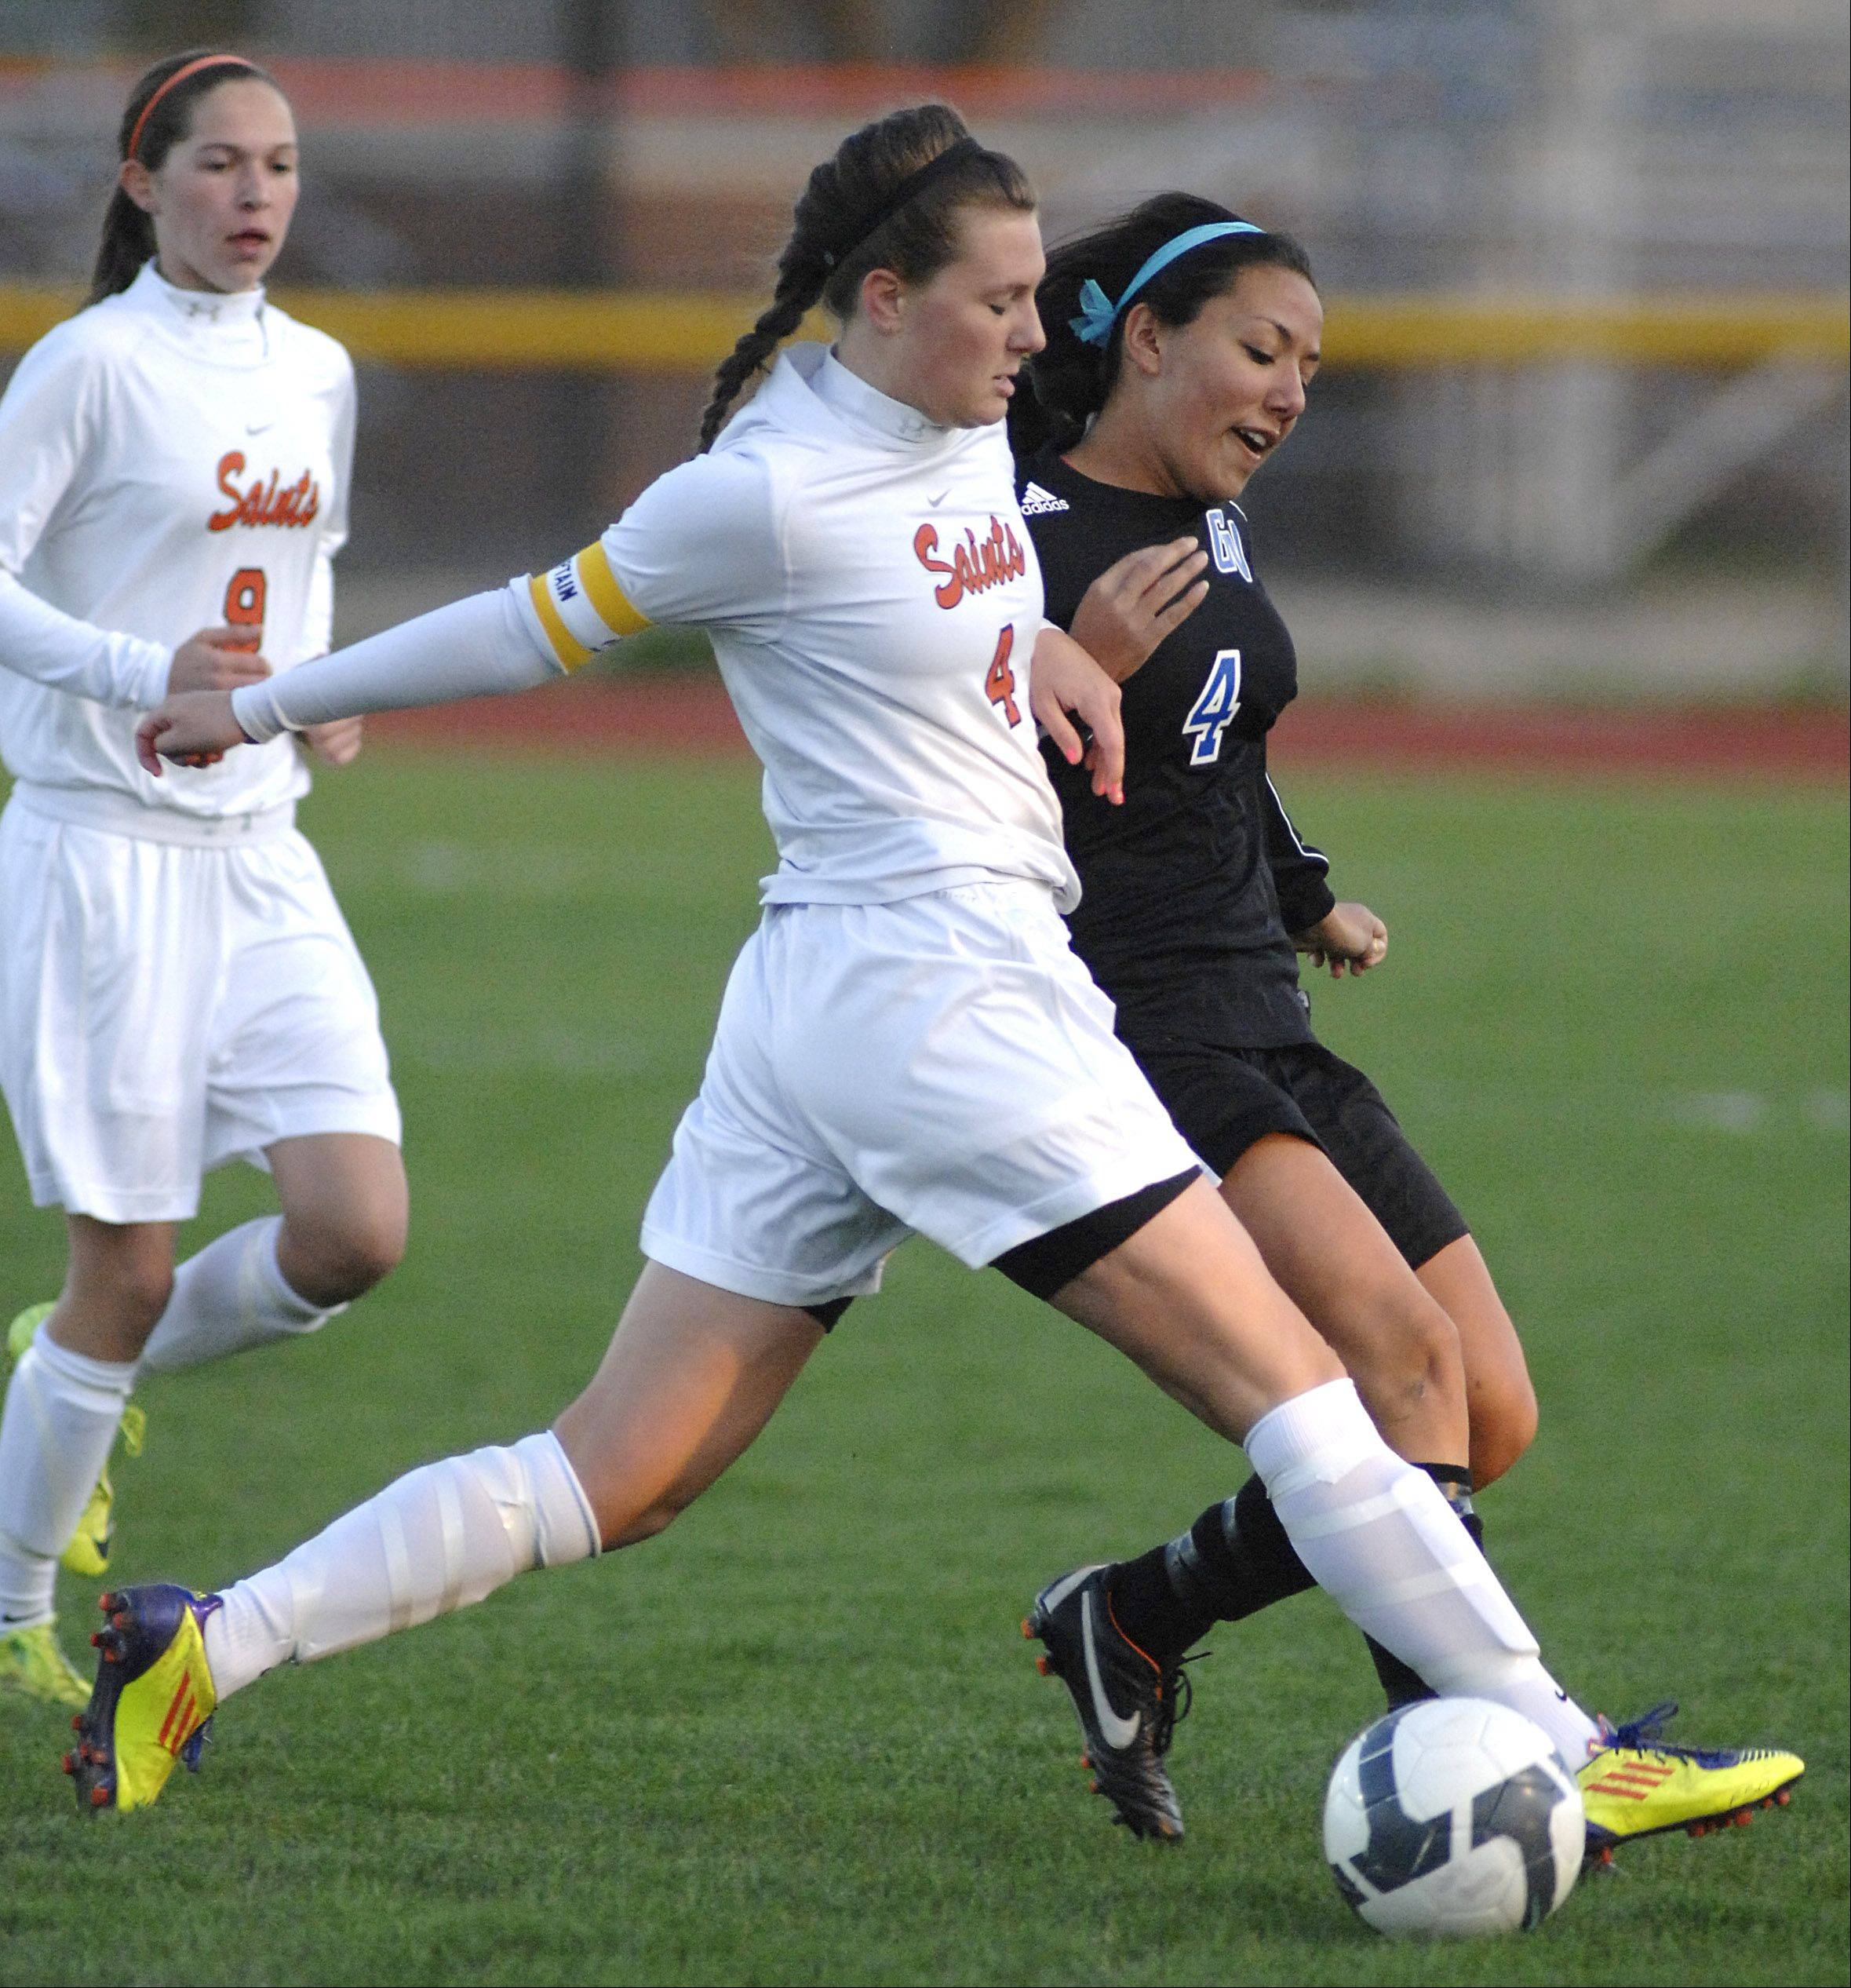 St. Charles East's Rachel Pottle and Geneva's Kristin Rodriguez battle for the ball in the first half on Wednesday, April 4.